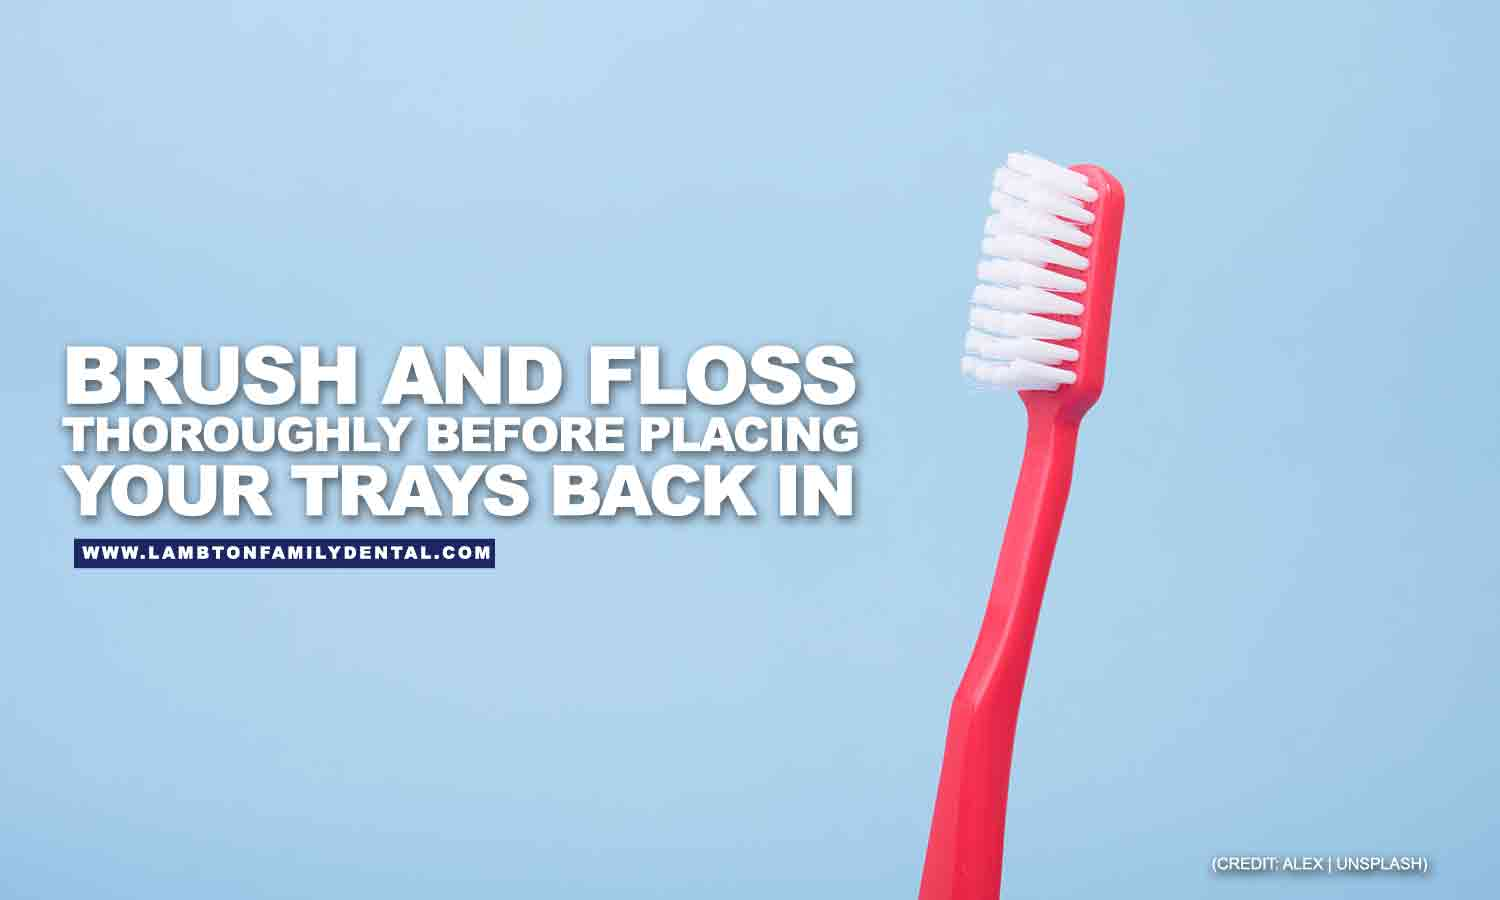 Brush and floss thoroughly